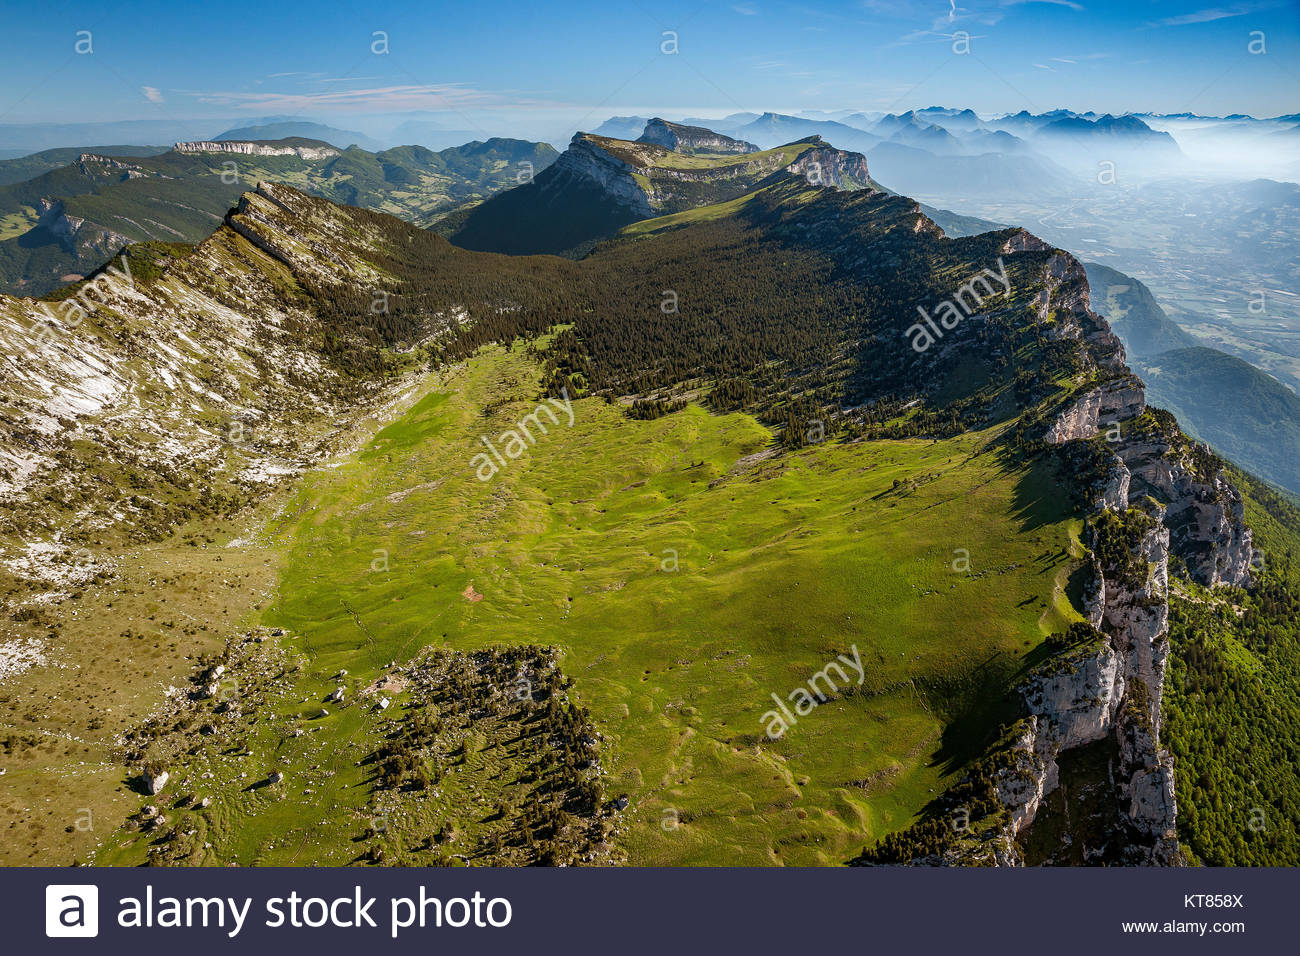 View from above the Réserve naturelle des Hauts de Chartreuse in the Chartreuse mountain range and natural park Stock Photo